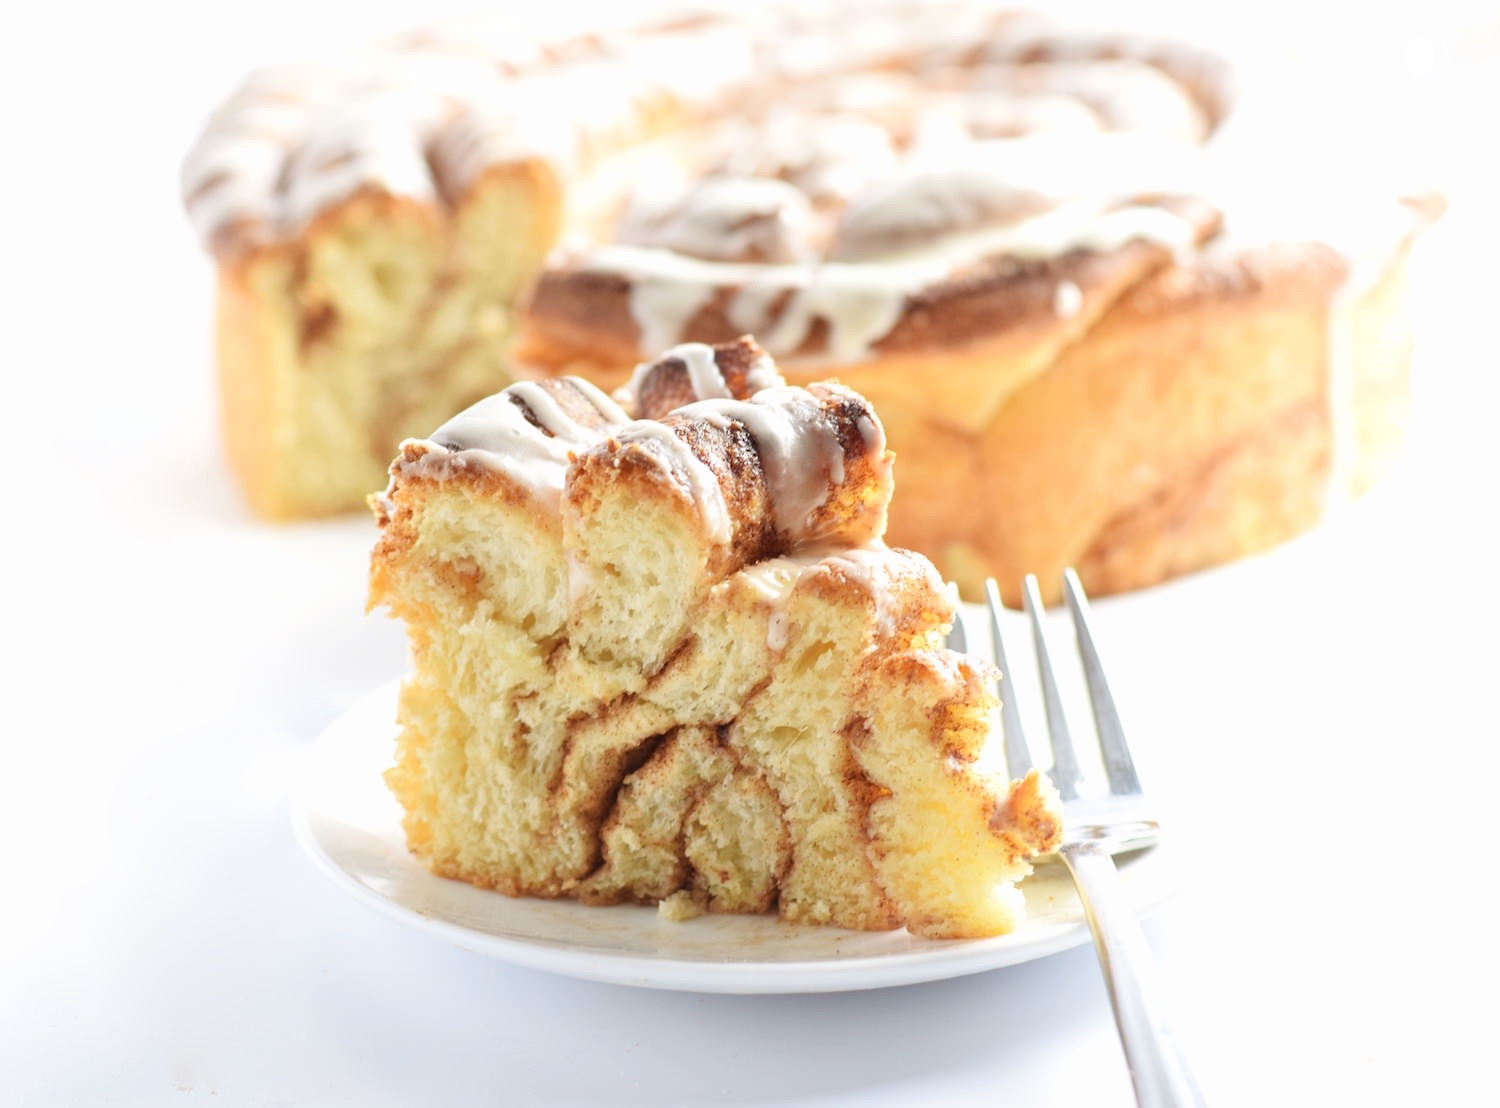 Cinnamon Roll Cake - soft, fluffy, gooey cinnamon rolls made easier and more beautiful in the form of a giant cinnamon roll cake! Must try! | trufflesandtrends.com